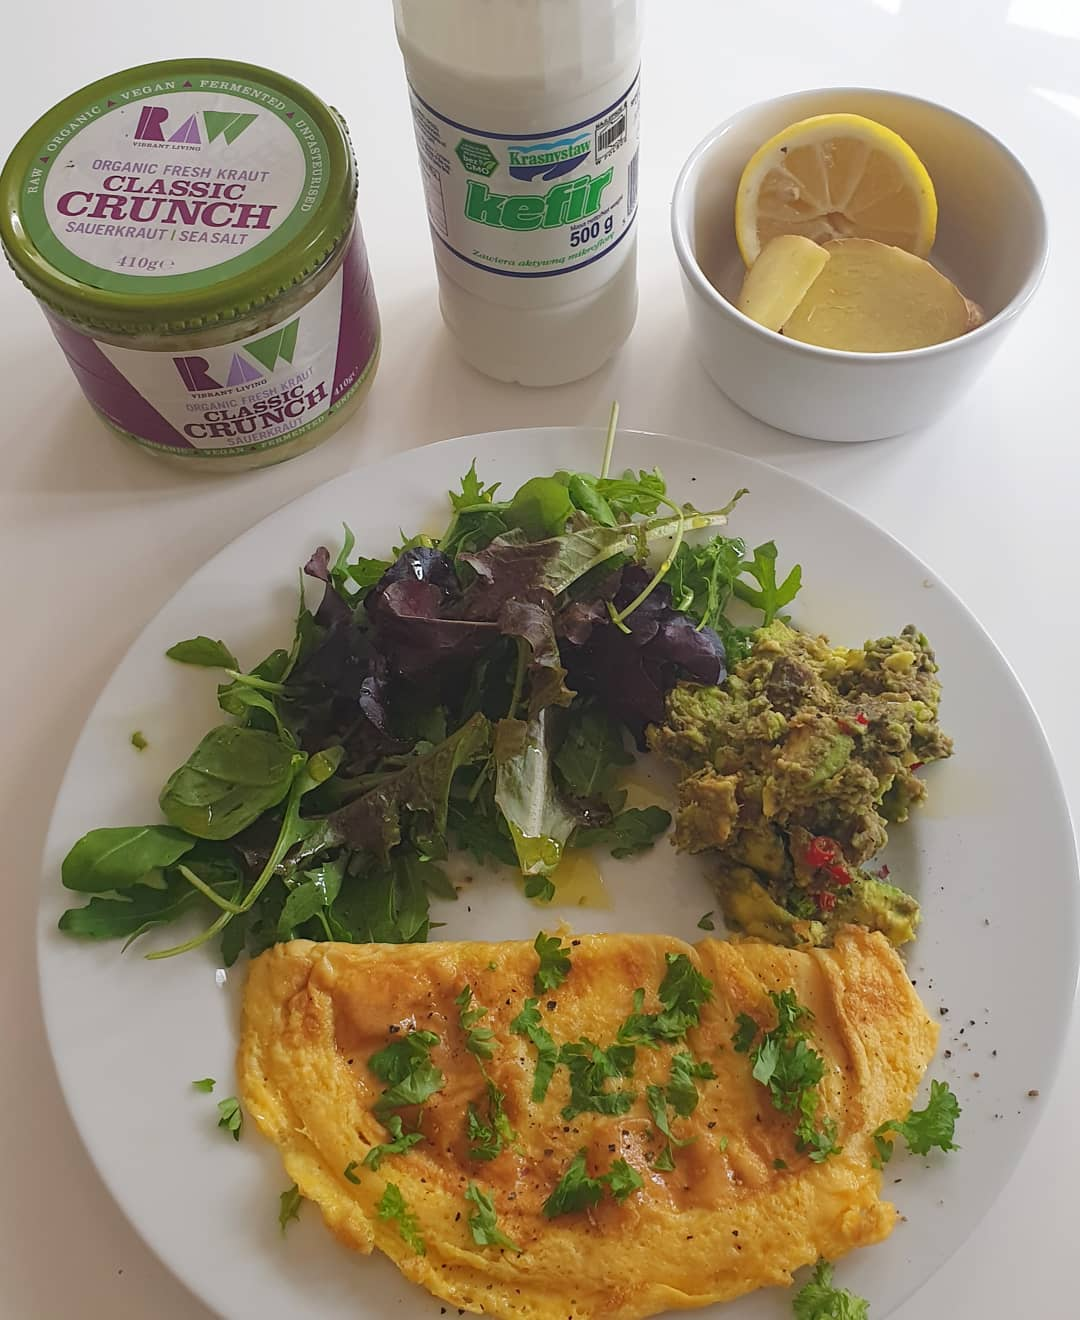 The beginning of a detox week. First meal of Monday, 16 hours since the last meal on Sunday evening. . Day started first thing with mug of hot water, lemon and ginger. . Expresso coffee mid-morning. . Sauerkraut and a small glass Kefir before the main meal of the day:  Organic 2 egg omelette, salad leaves, smashed avocado with chillies, and drizzle of olive oil and some chopped parsley. . Cup of 'white' not green, herbal tea at tea-time. . At around 6pm this evening's supper is a large cup of chicken and vegetable bone broth. . Then a 12 hour fast until Tuesday. . . . . .